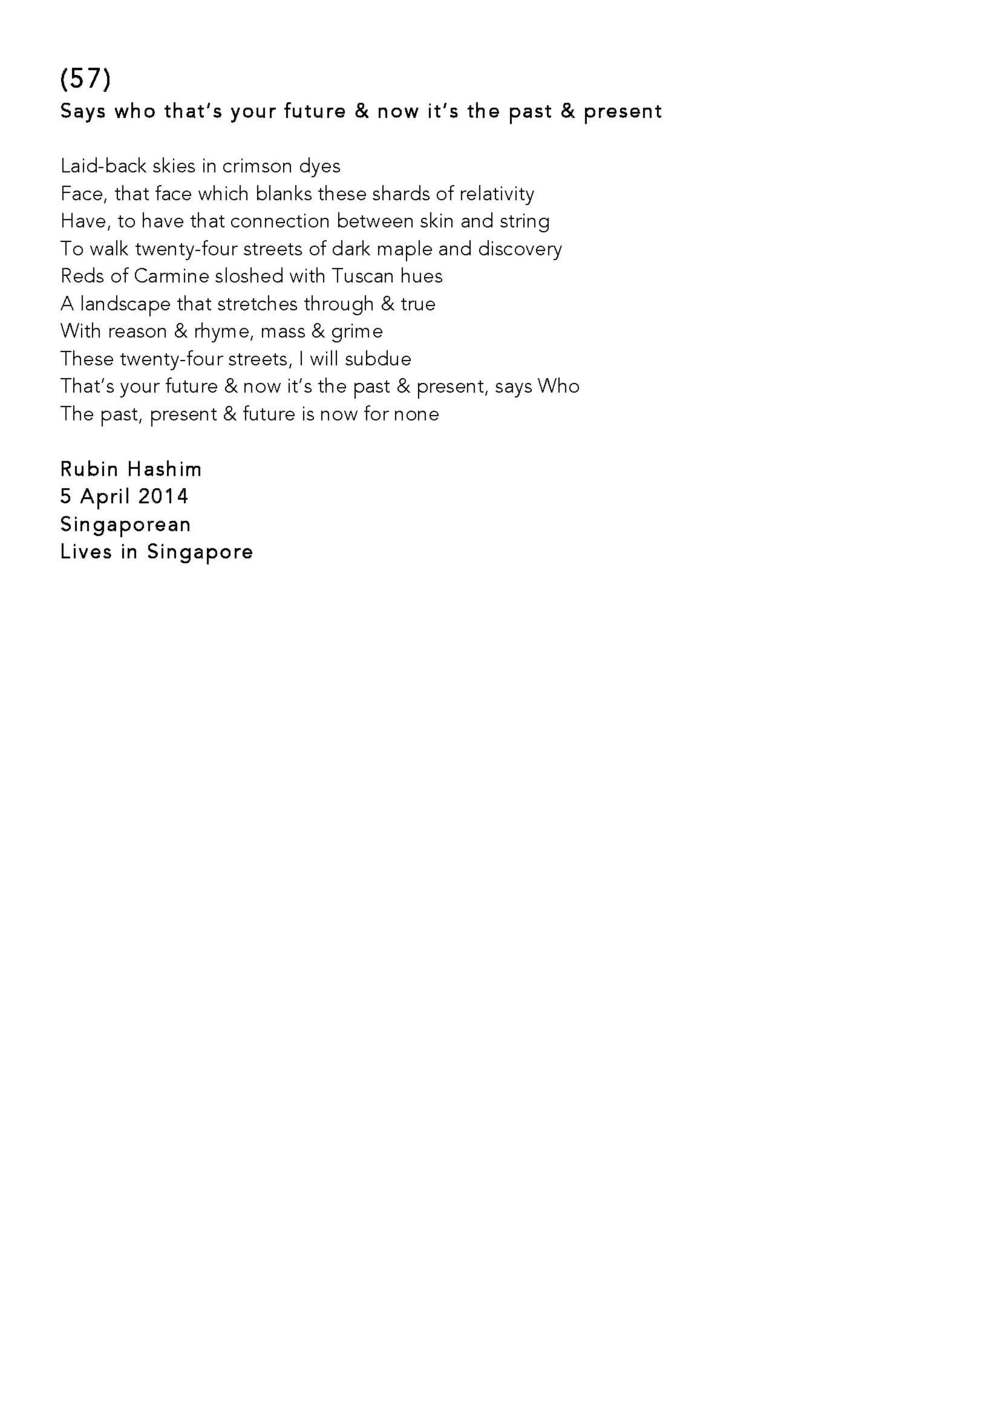 Poetry Collection - Everyone can Poetry_March 2014_Page_57.jpg